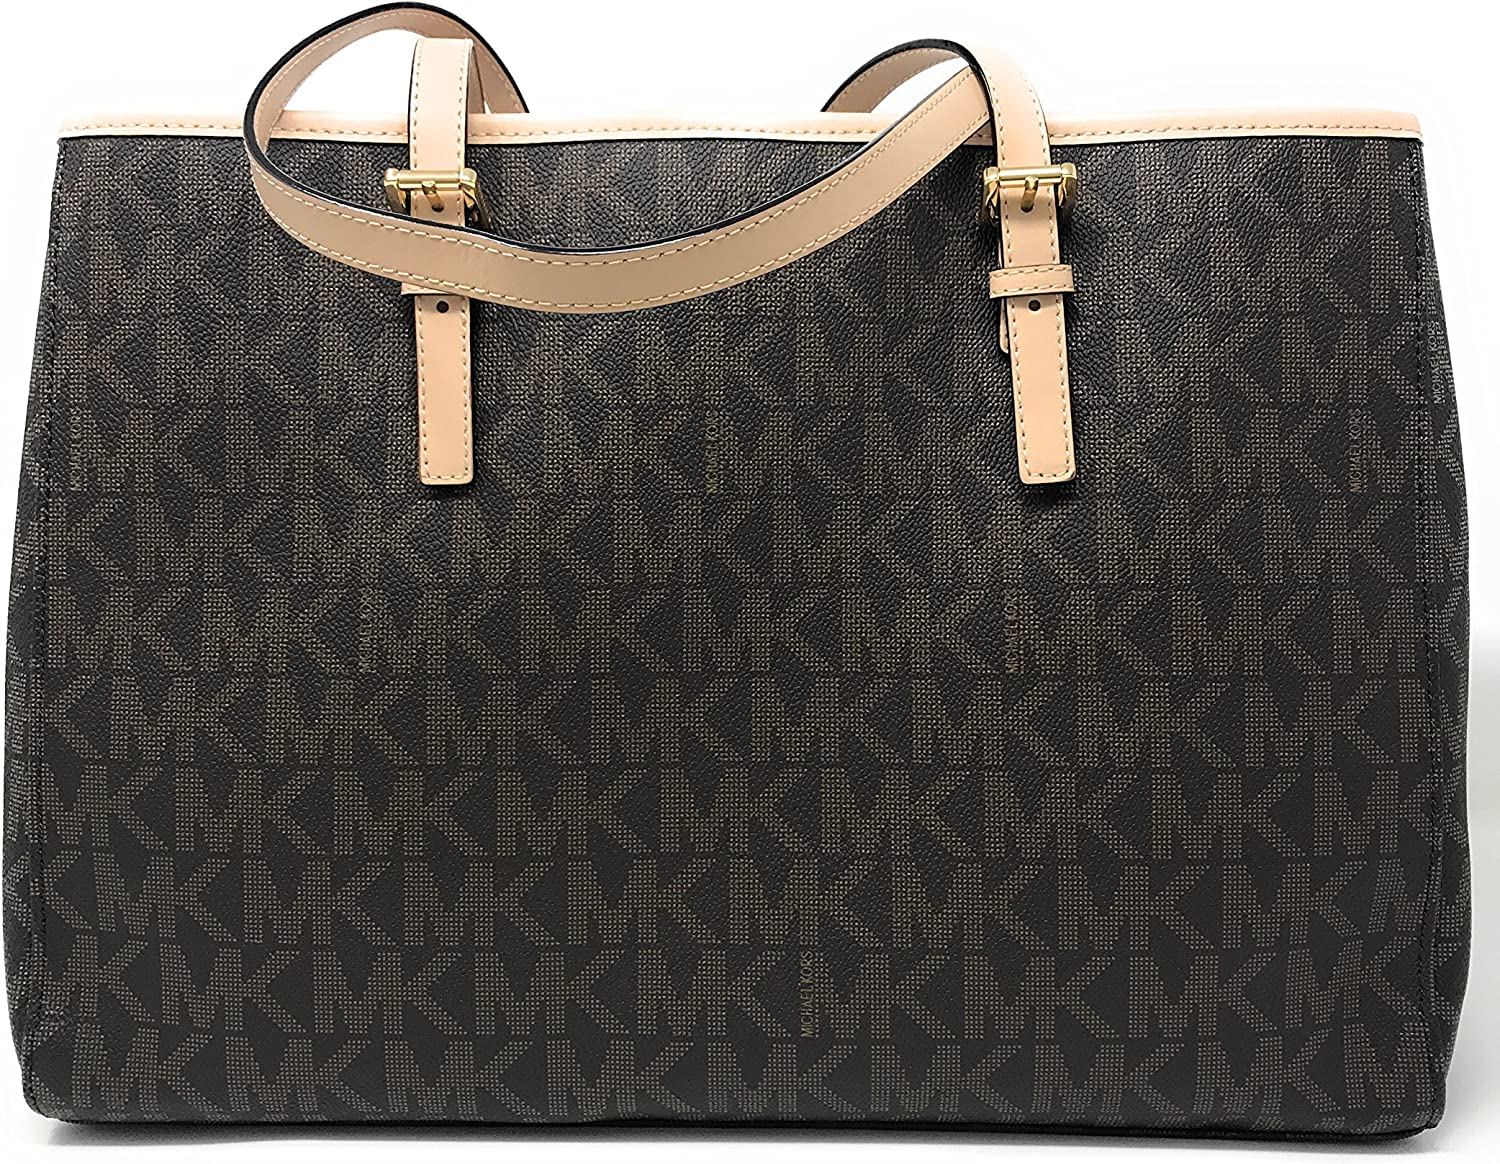 Michael Kors Jet Set PVCGenuine Leather EastWest Travel TOTE